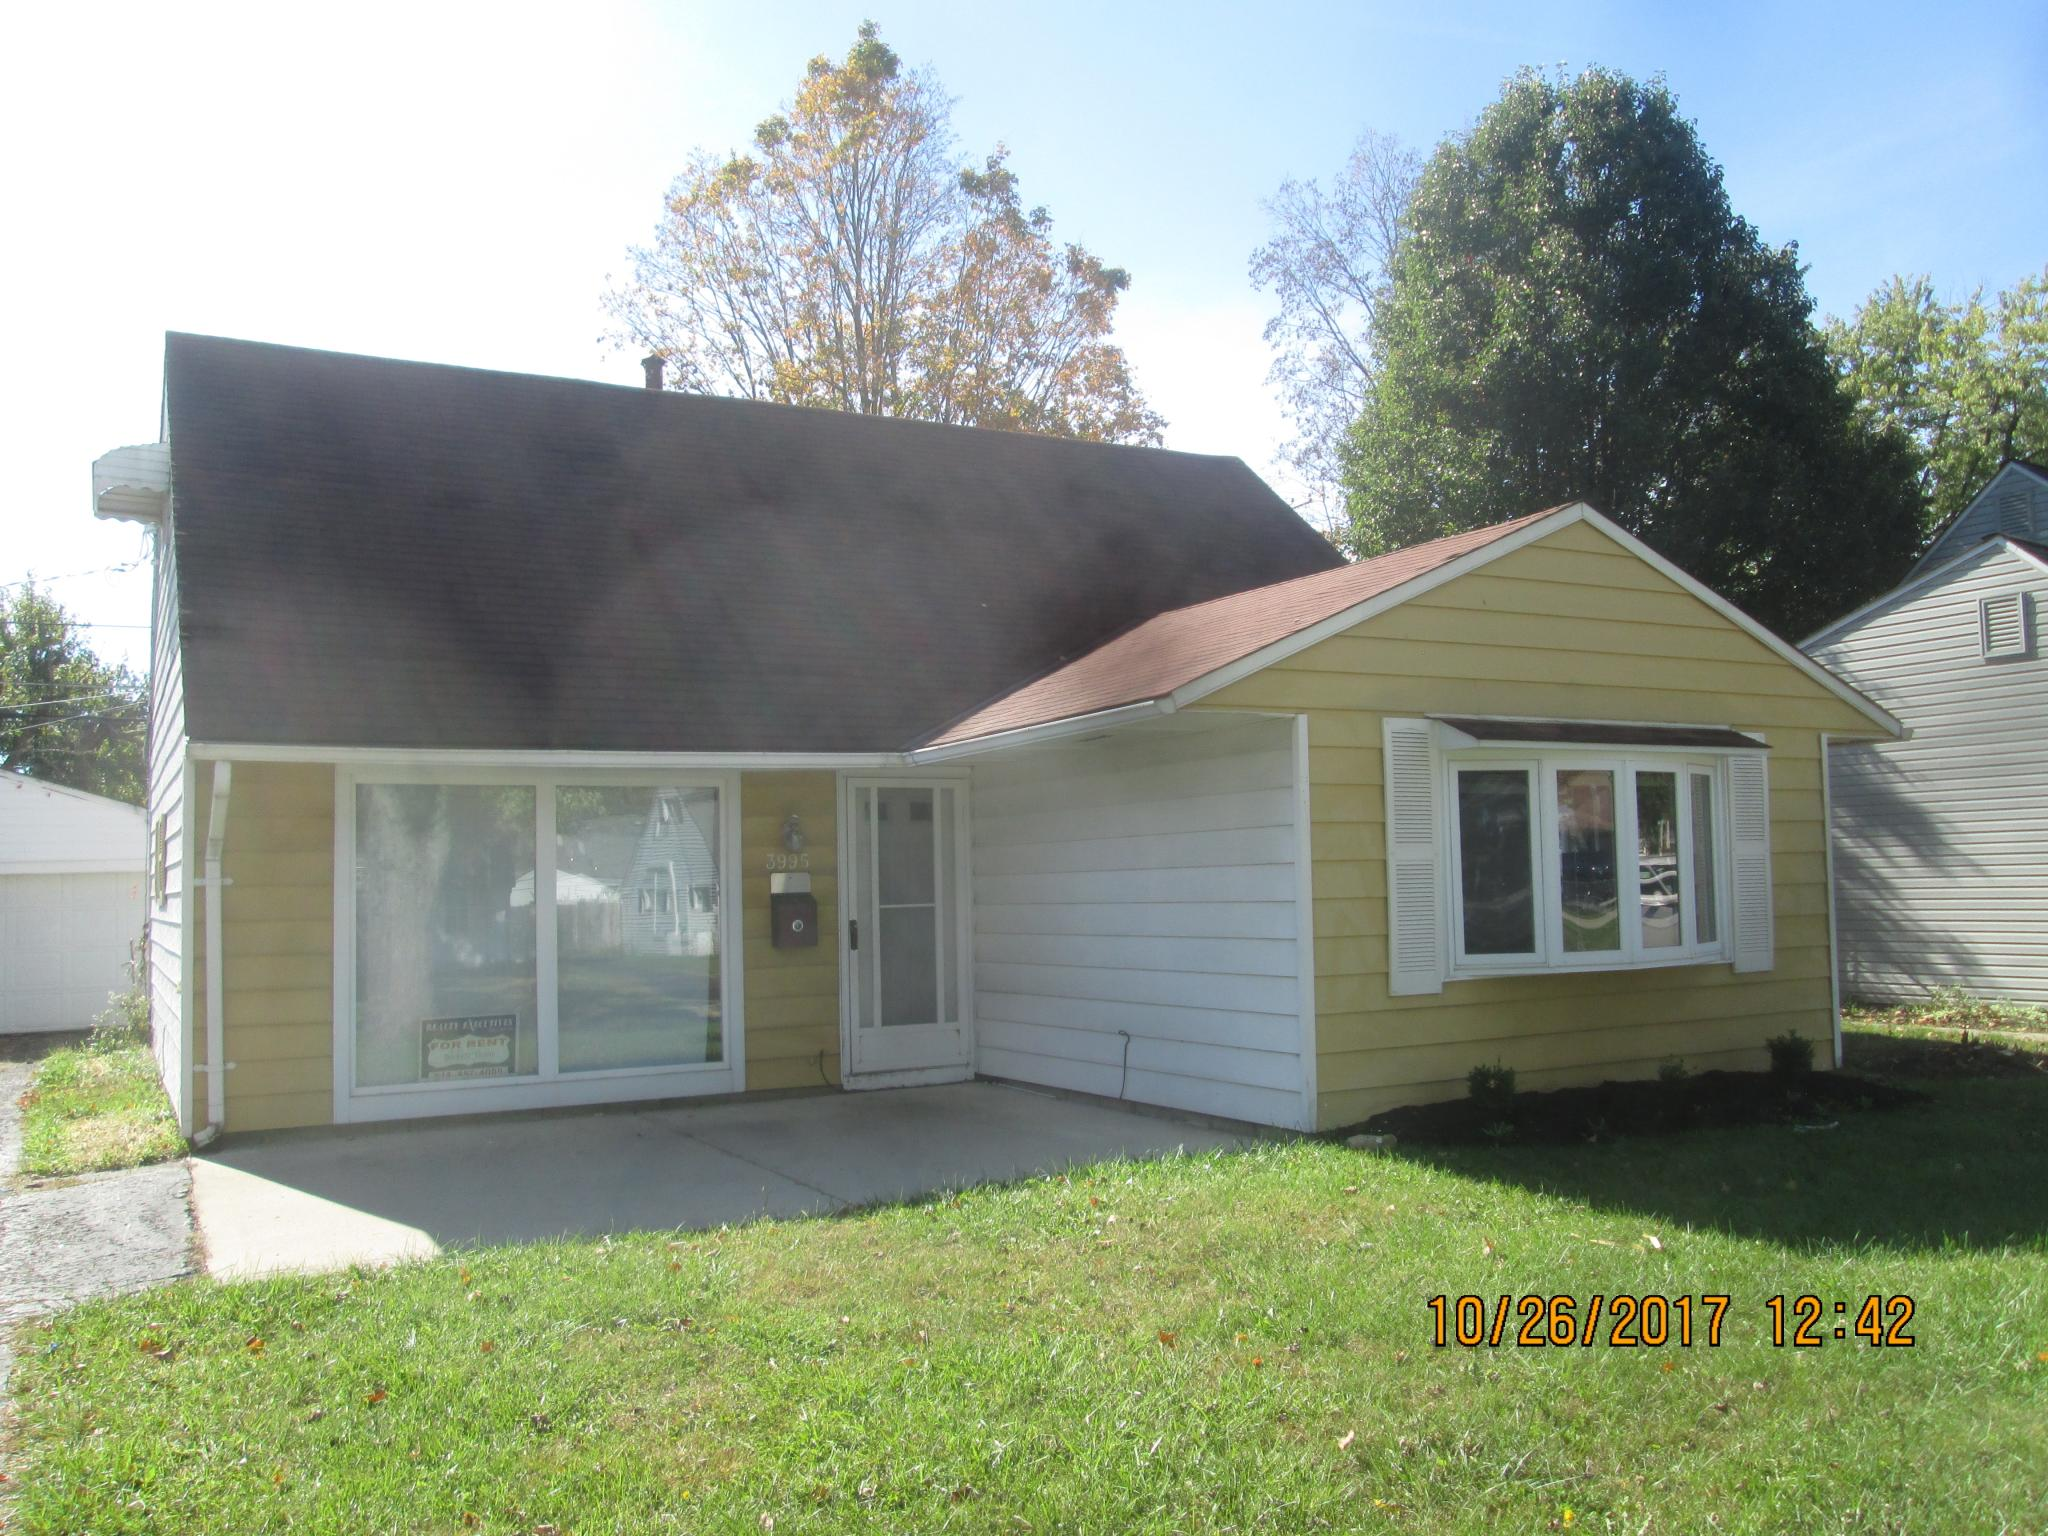 3995 Virginia Cir E Whitehall Oh 43213 5 Bed 1 Bath Single